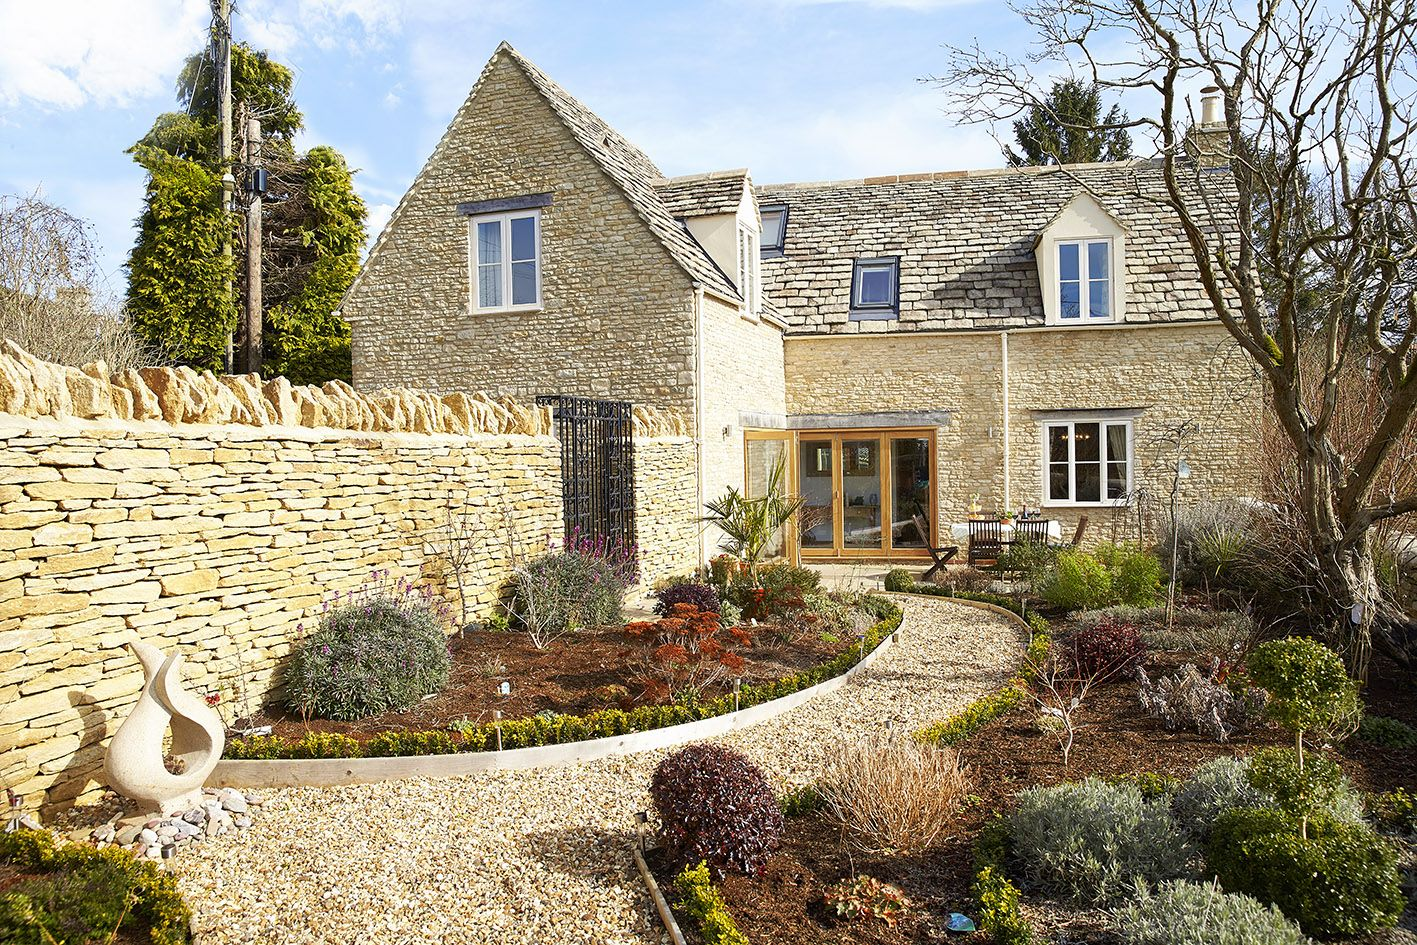 Little Maunditts Cottage enclosed courtyard garden with box lined gravel paths and flower beds